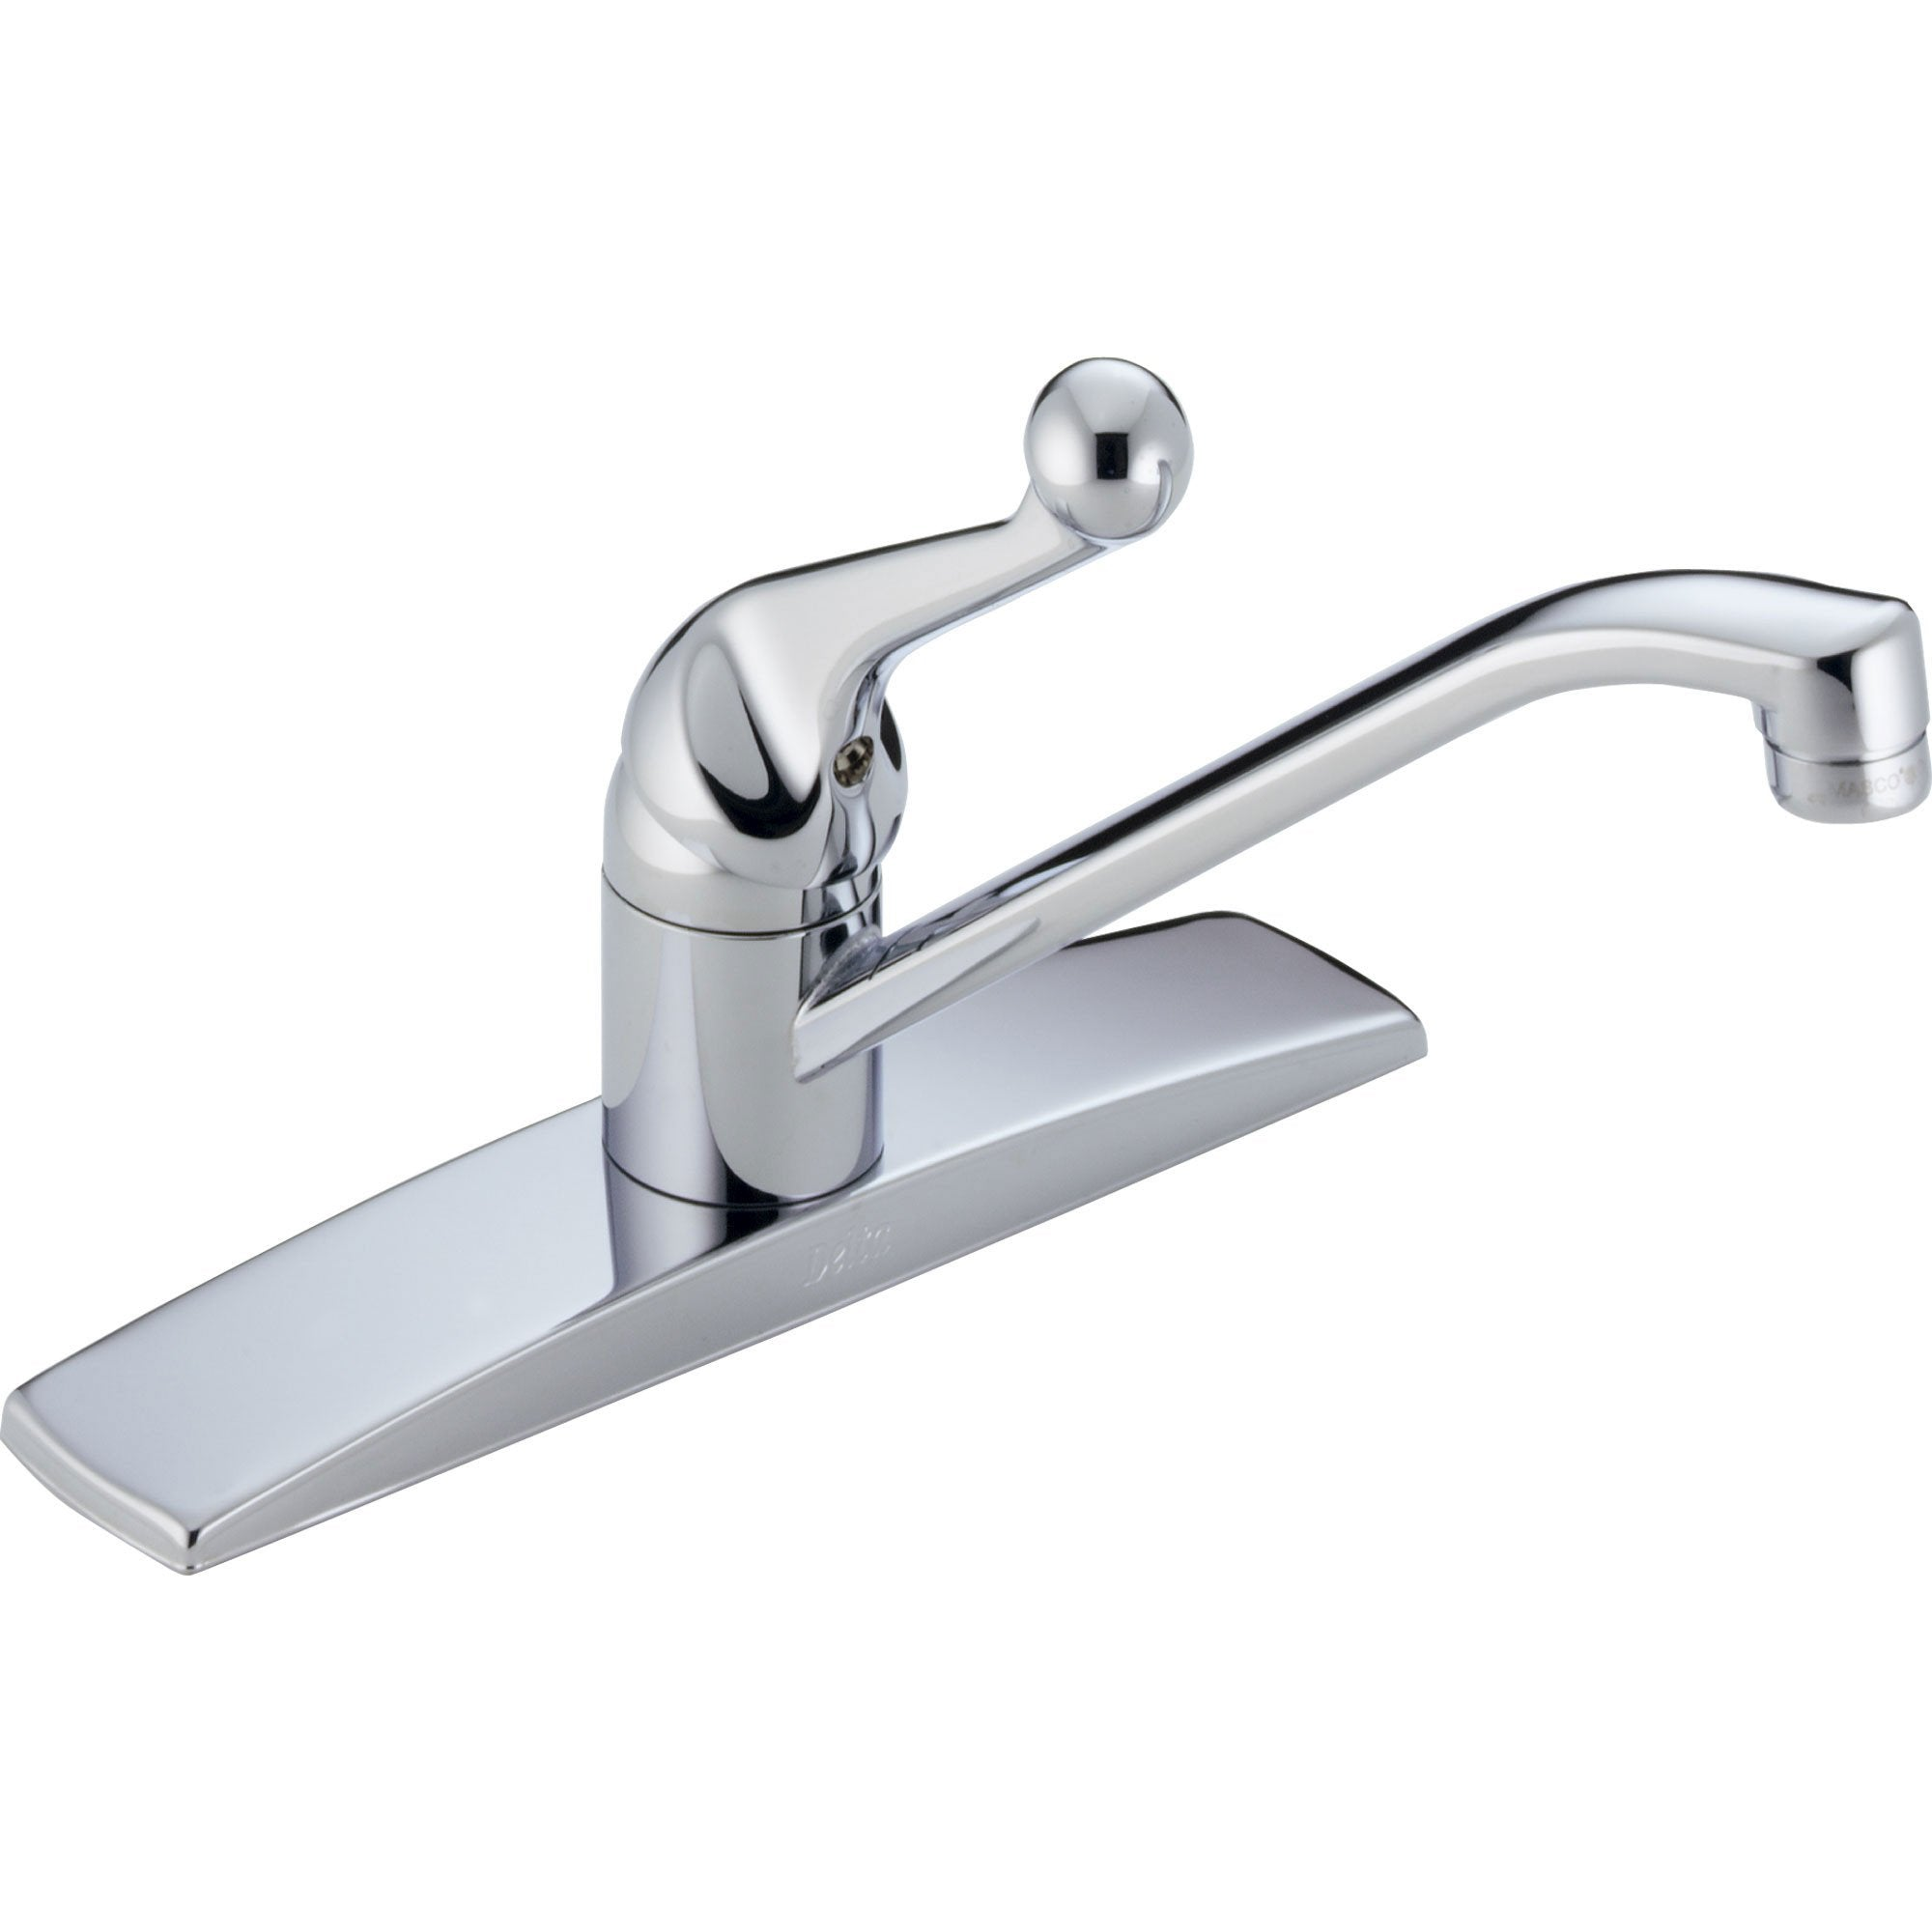 Delta Classic Standard Simple Single Handle Kitchen Faucet in Chrome 610434